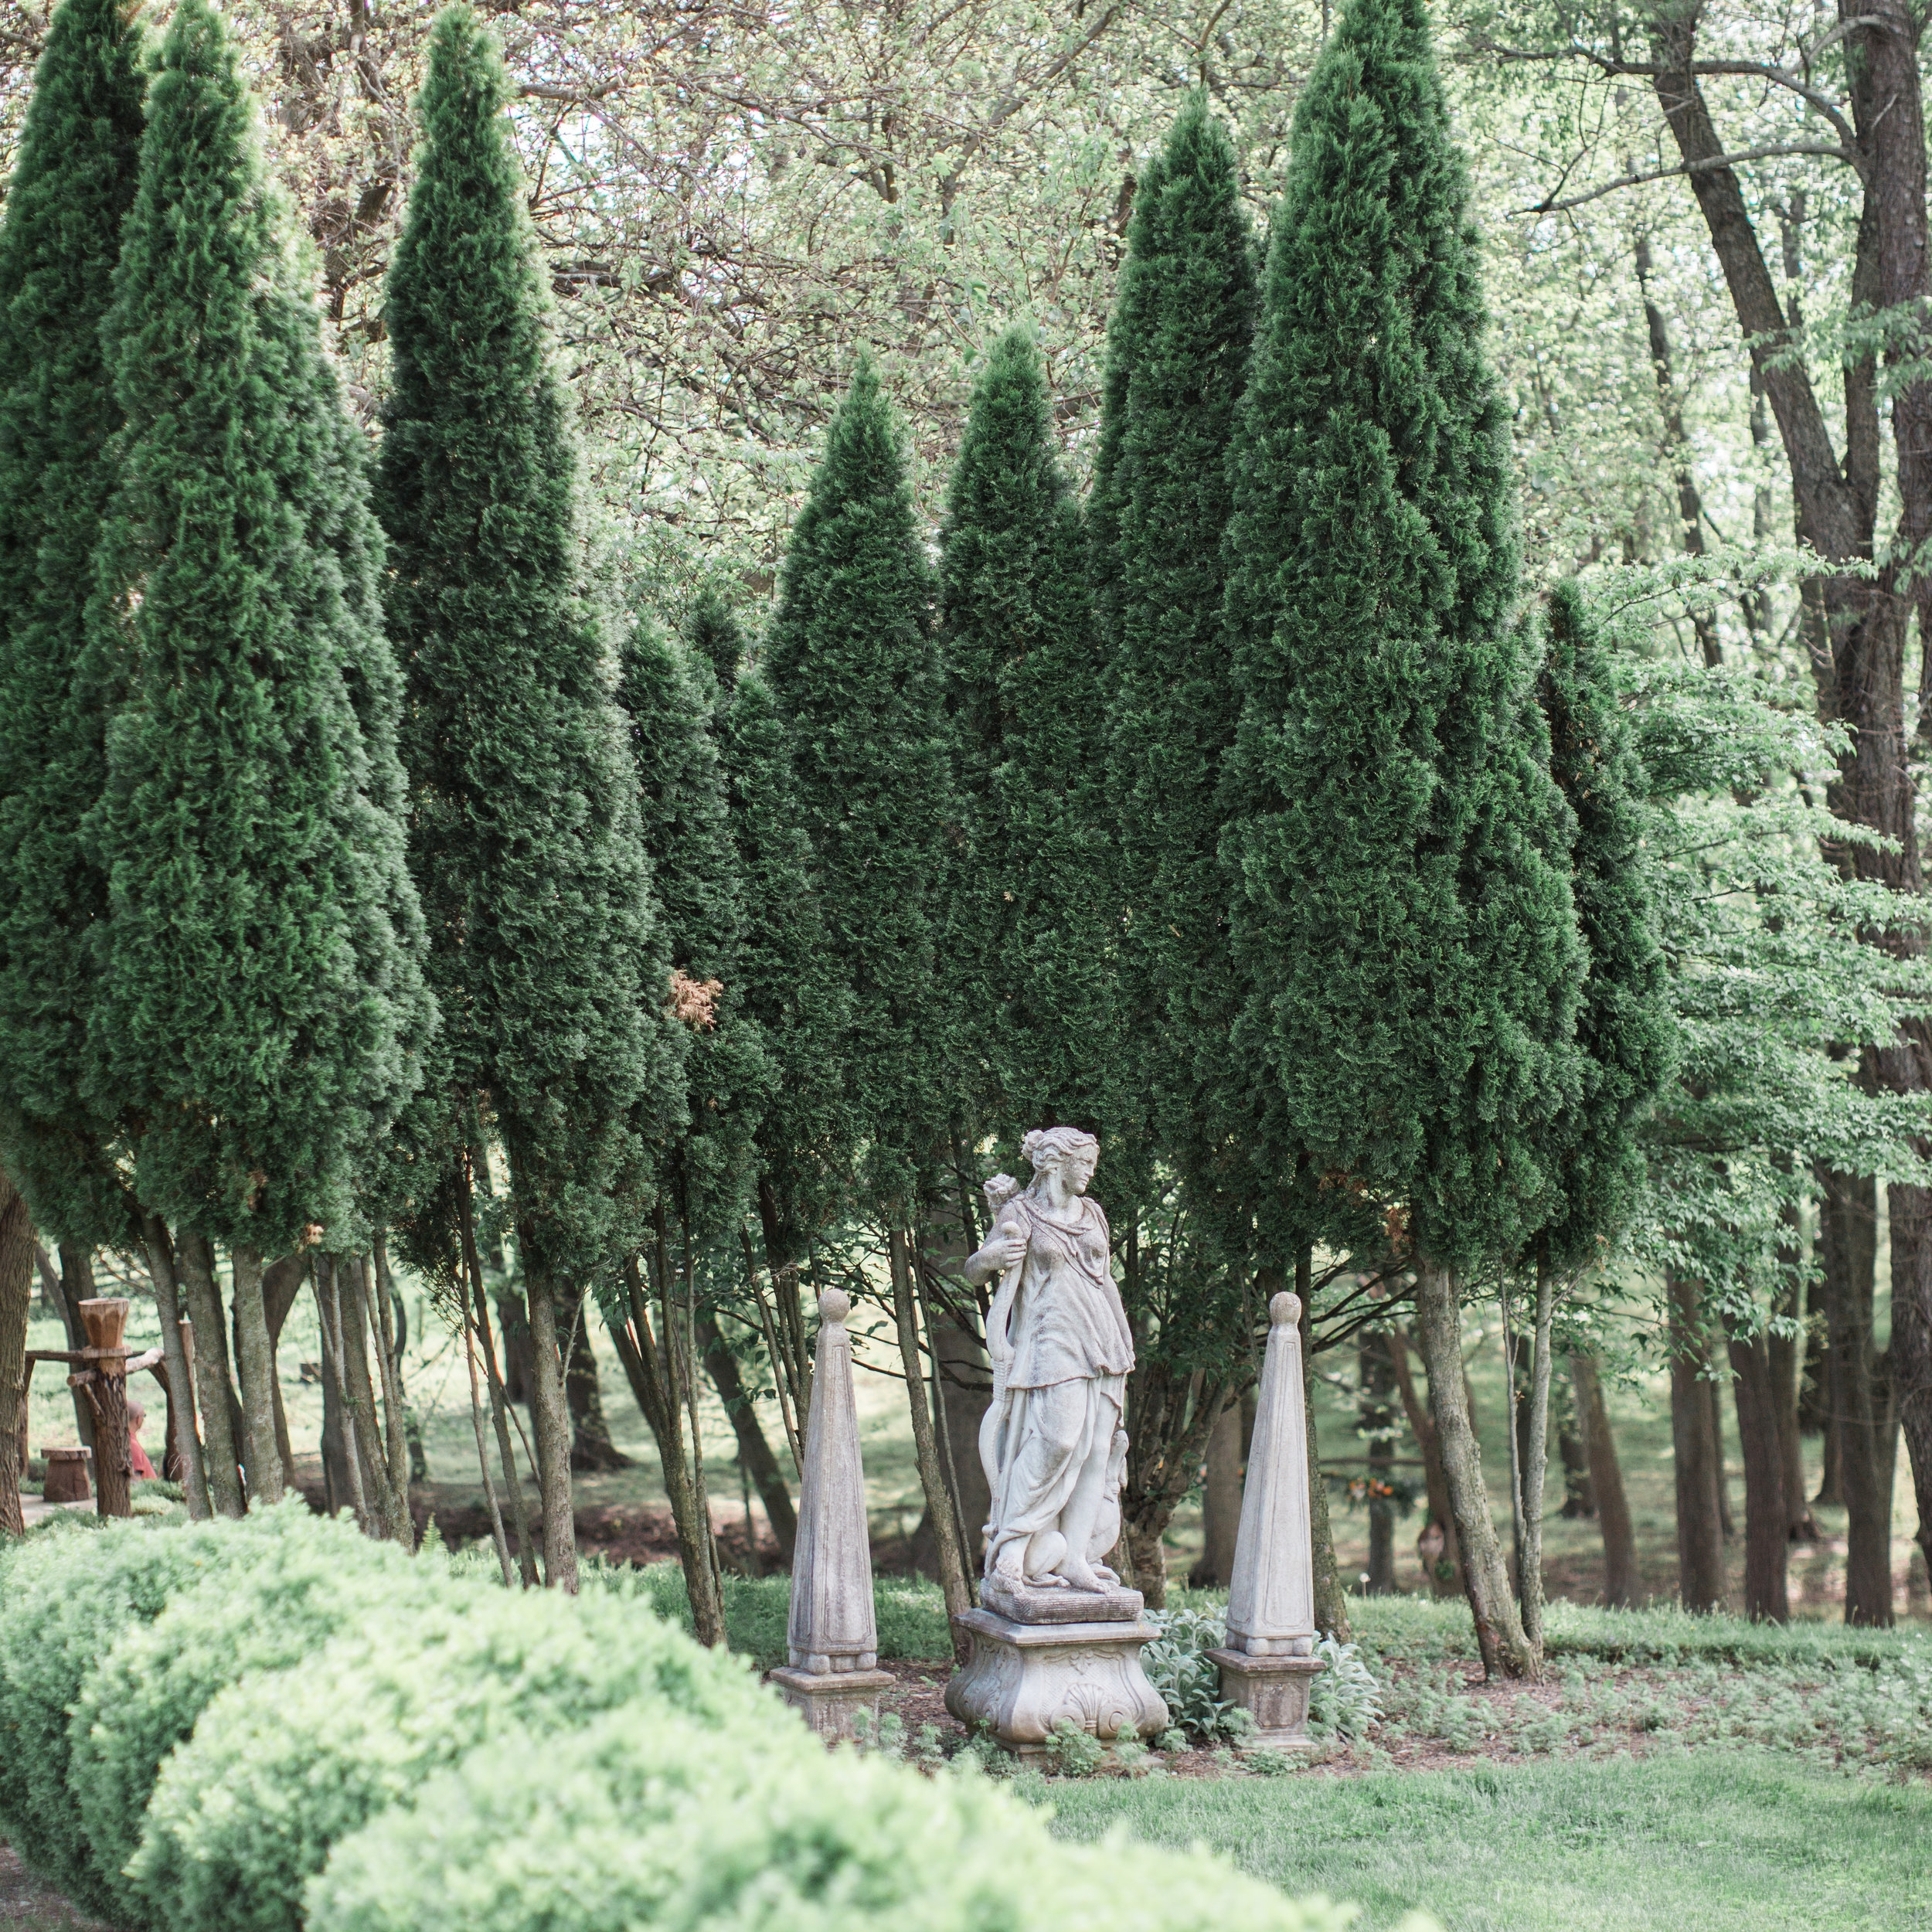 The English Garden - Reminiscent of a scene from Pride & Prejudice, the English boxwood garden is the perfect place to hold a small ceremony. It can also be used for a small rehearsal dinner and has even been utilized as an outdoor reception and cocktail hour space. Of course, formal photos taken here are also delightful!Photo courtesy of Jalapeno Photography